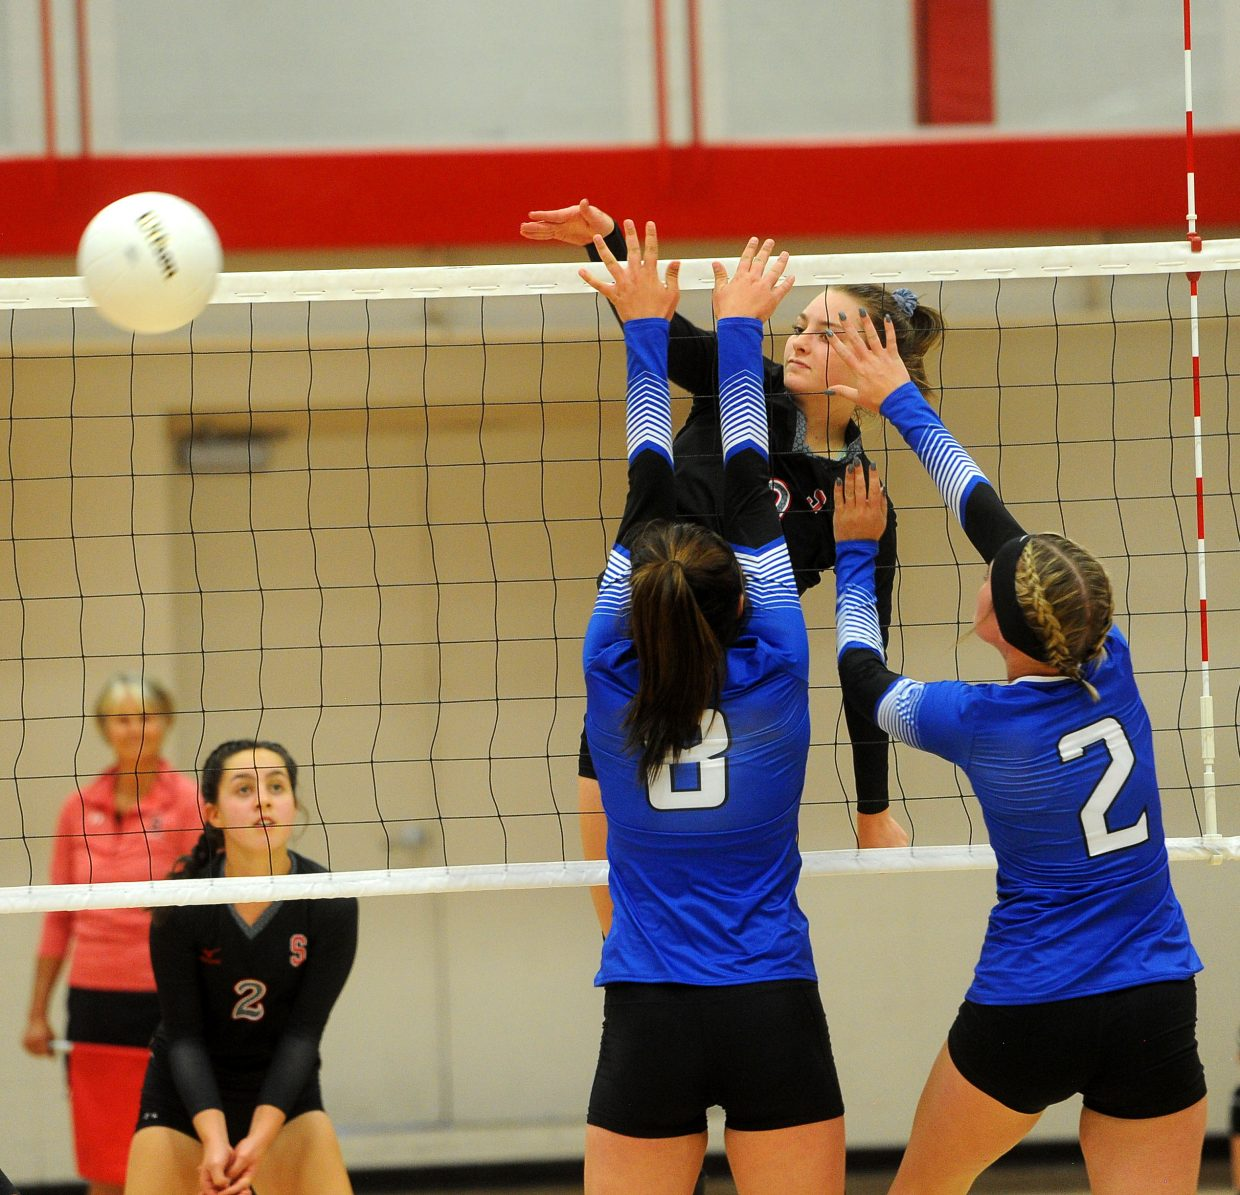 Senior Anna Allsberry nails a ball against Moffat County on Aug. 23 at Steamboat Springs High School. Allsberry is one of the top weapons on the Sailors' offense.